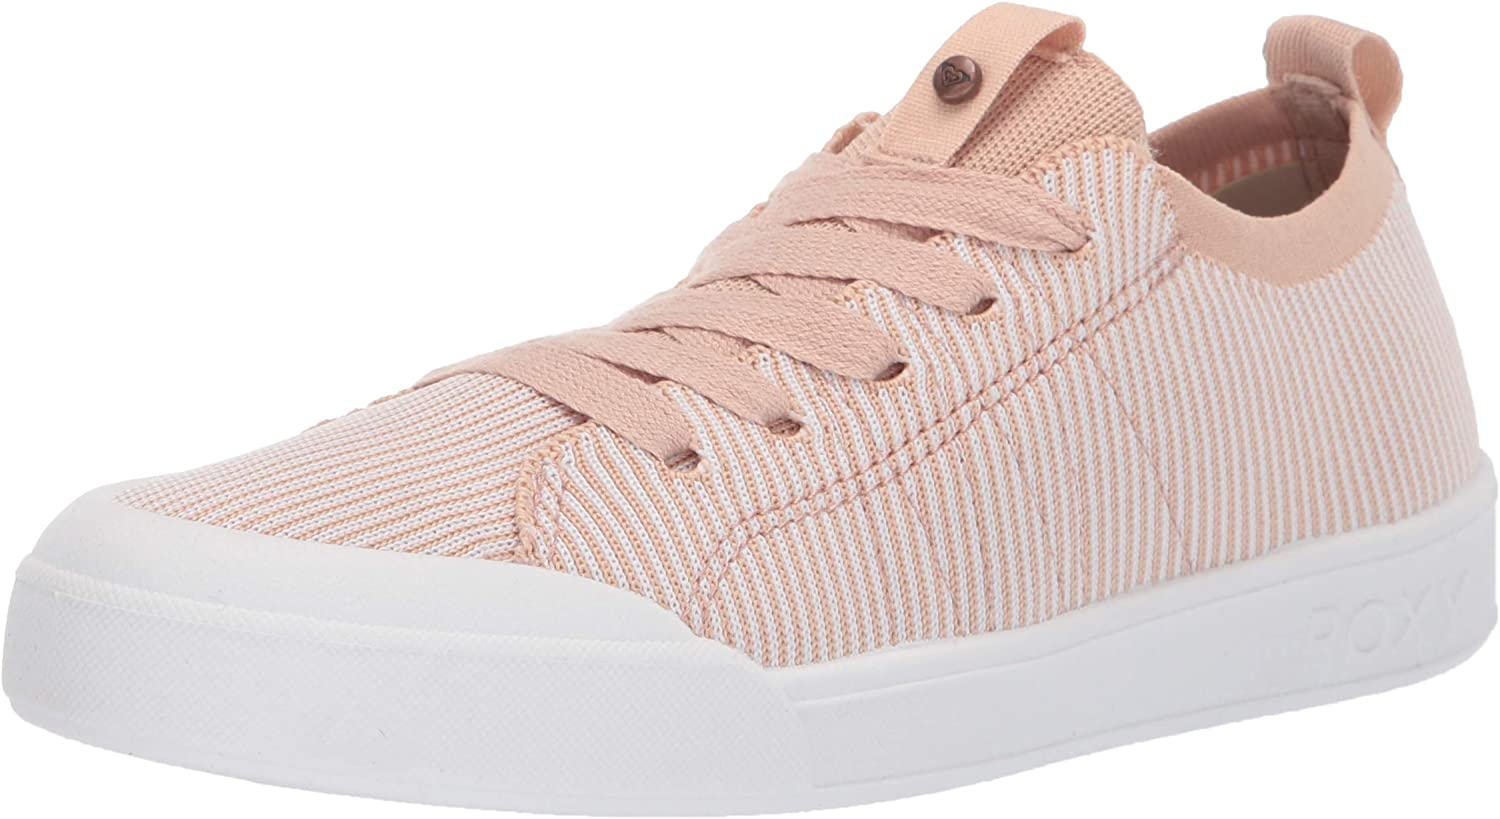 Roxy Womens Thalia Knit shoes Sneaker